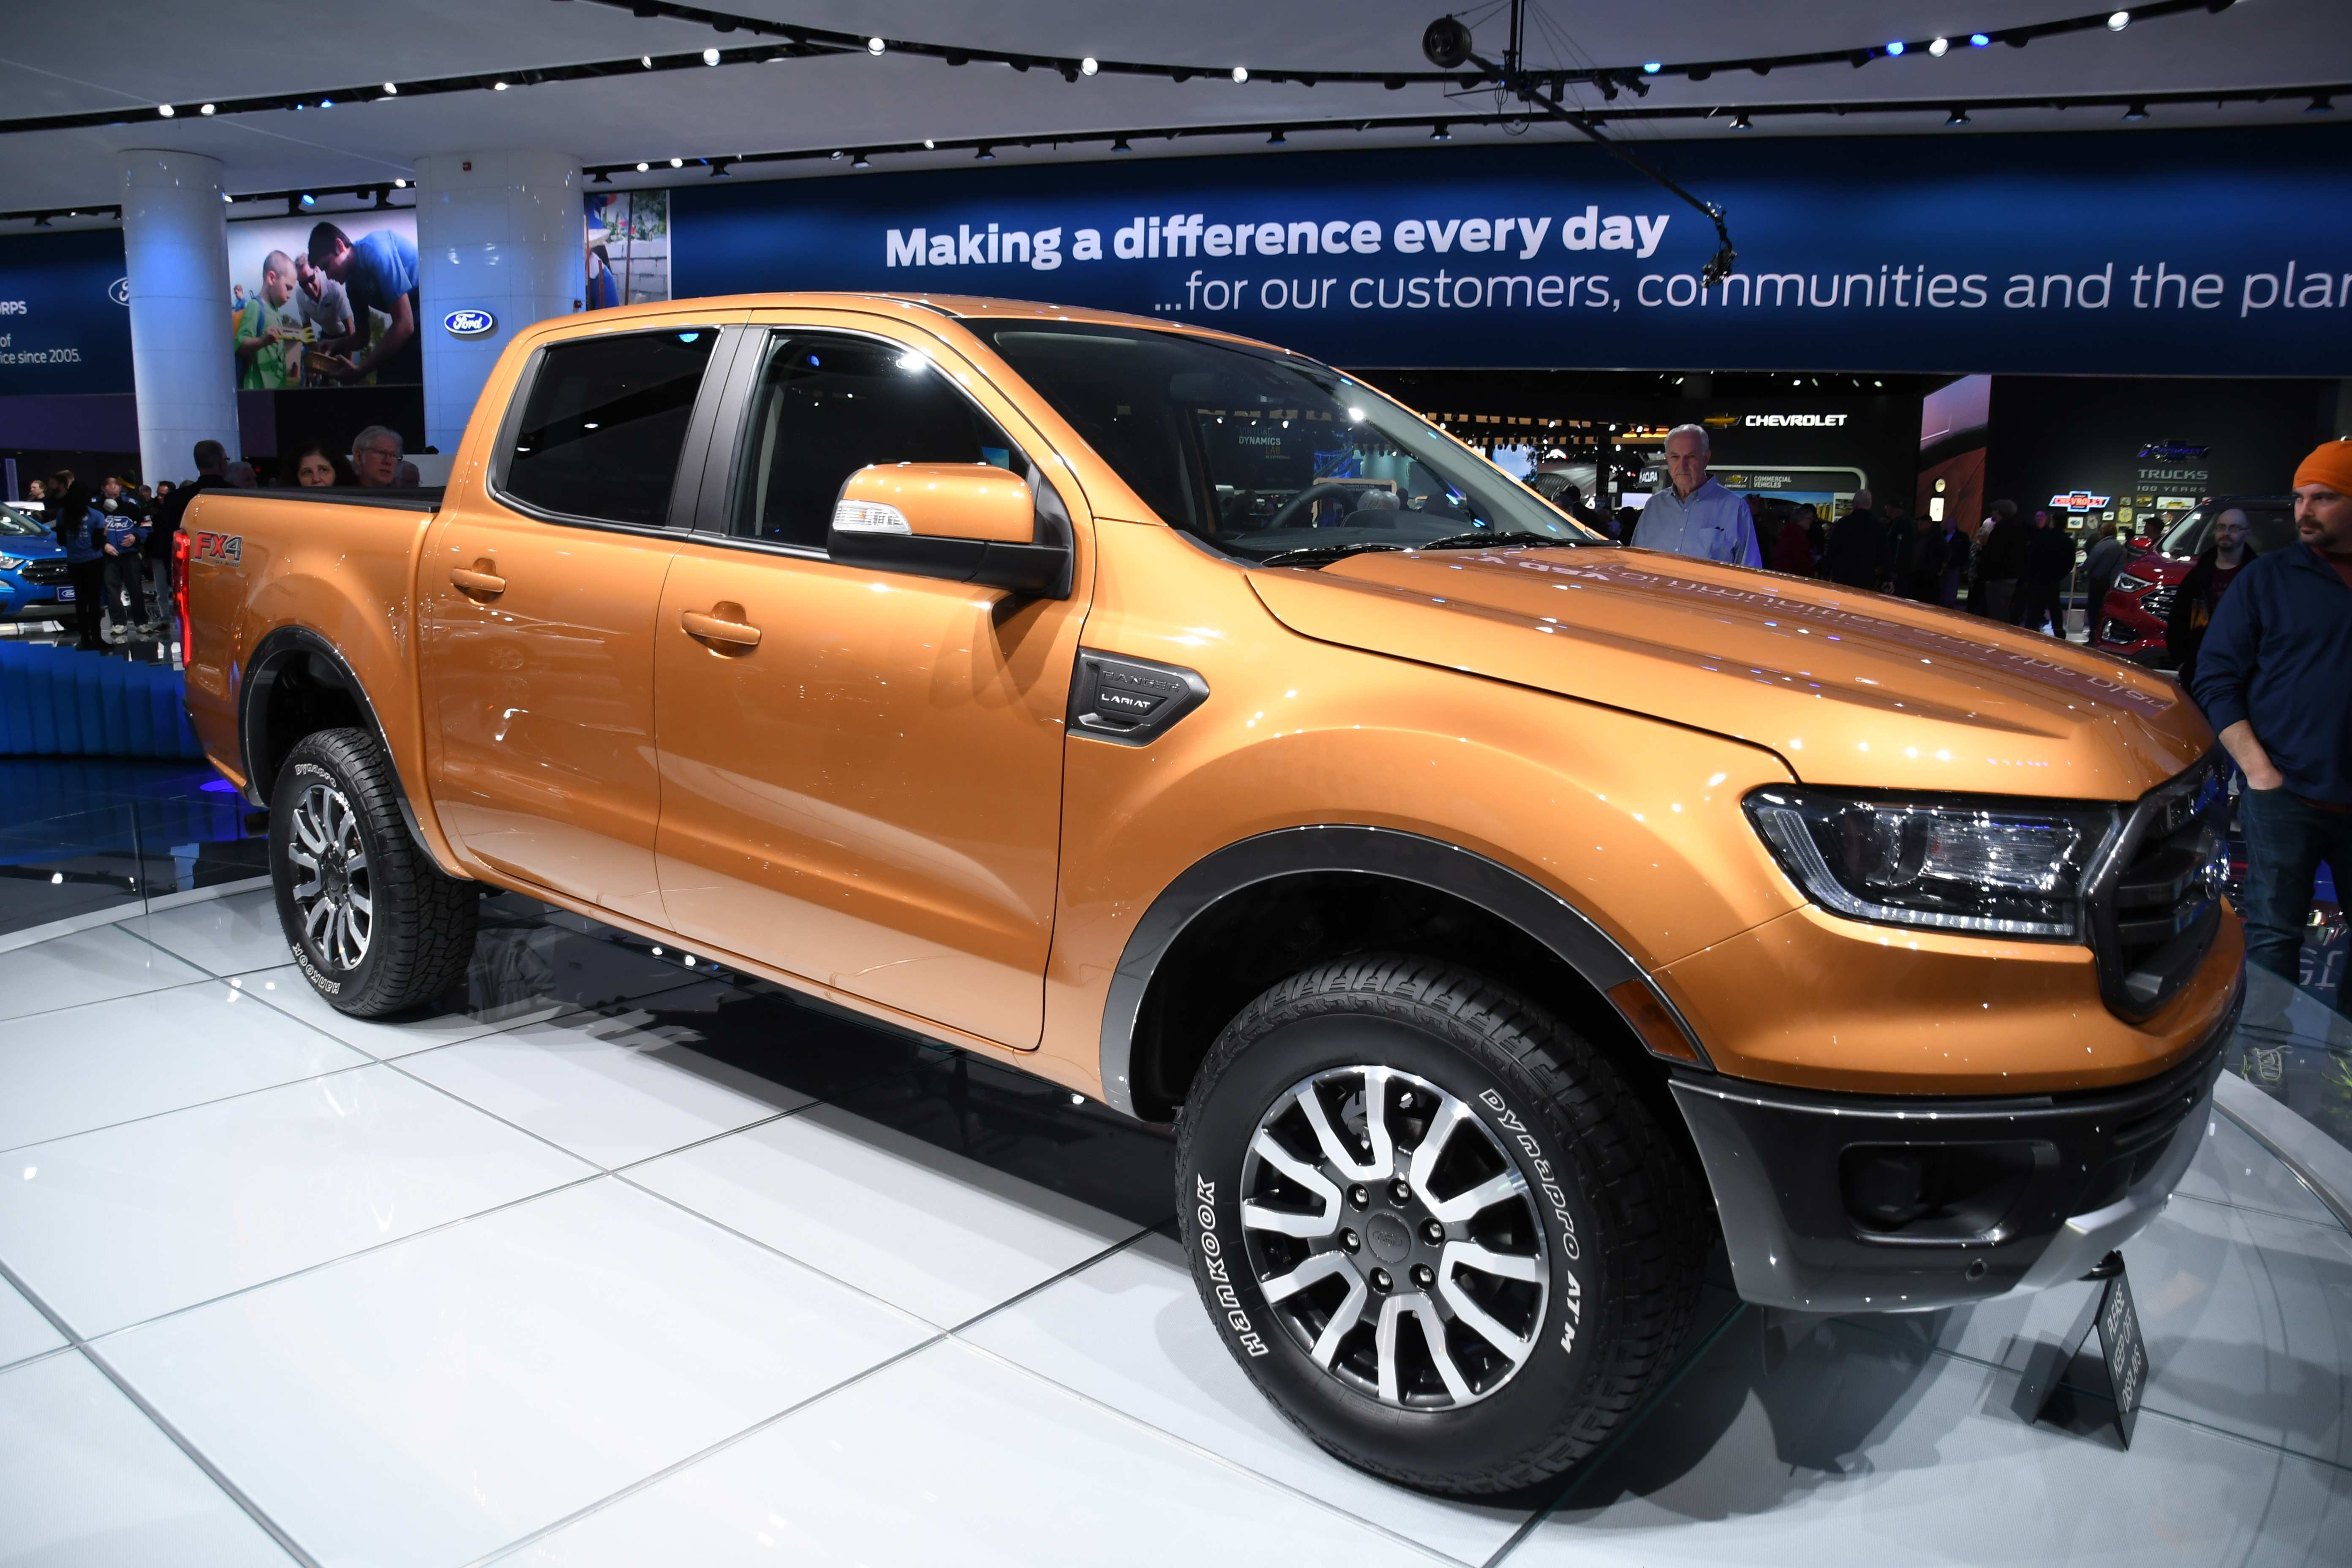 79 All New 2020 Ford Ranger Usa Price Design And Review